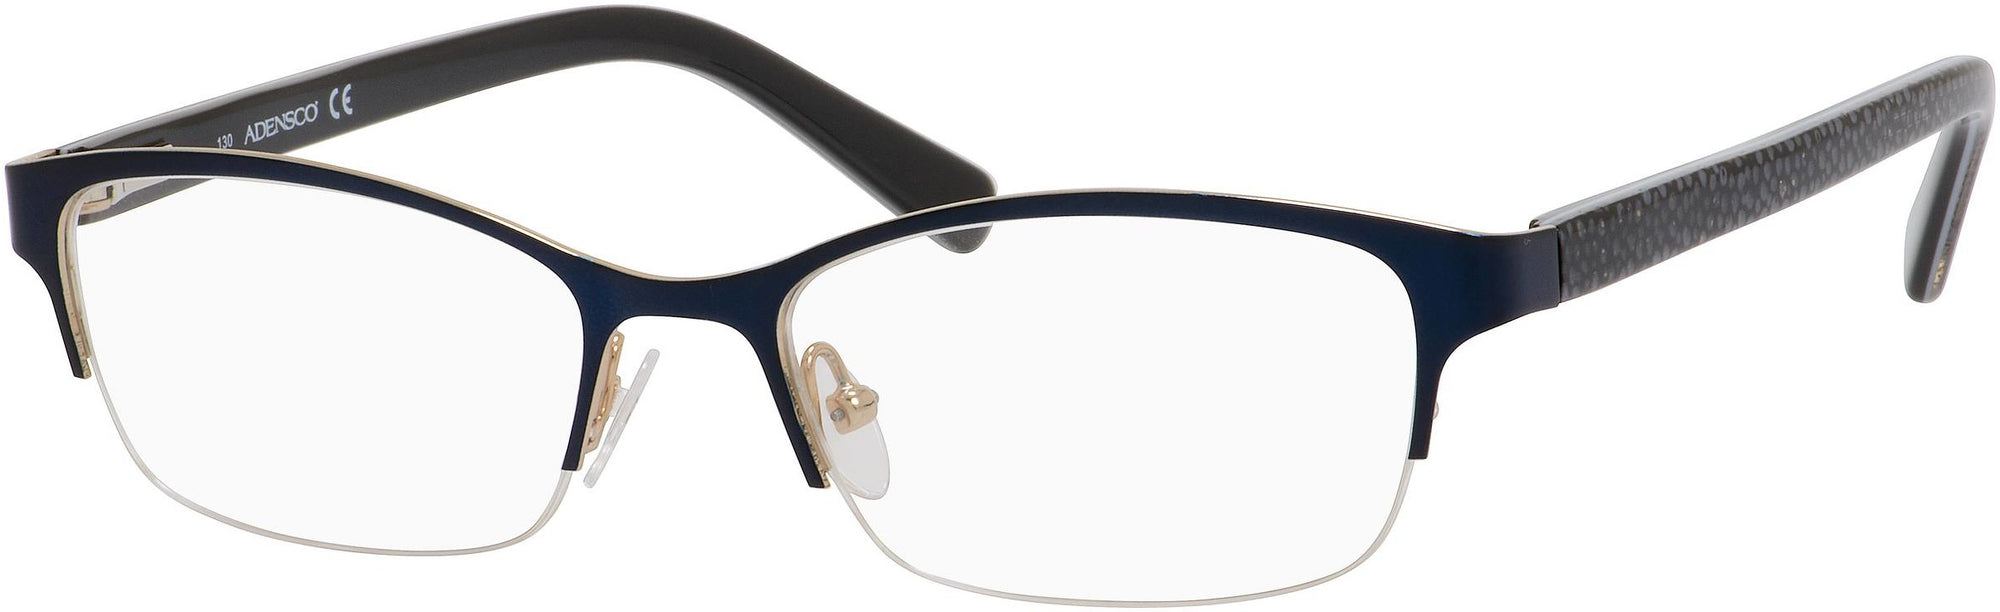 Adensco AD 200 Oval Modified Eyeglasses 0DA4-0DA4  Satin Navy (00 Demo Lens)